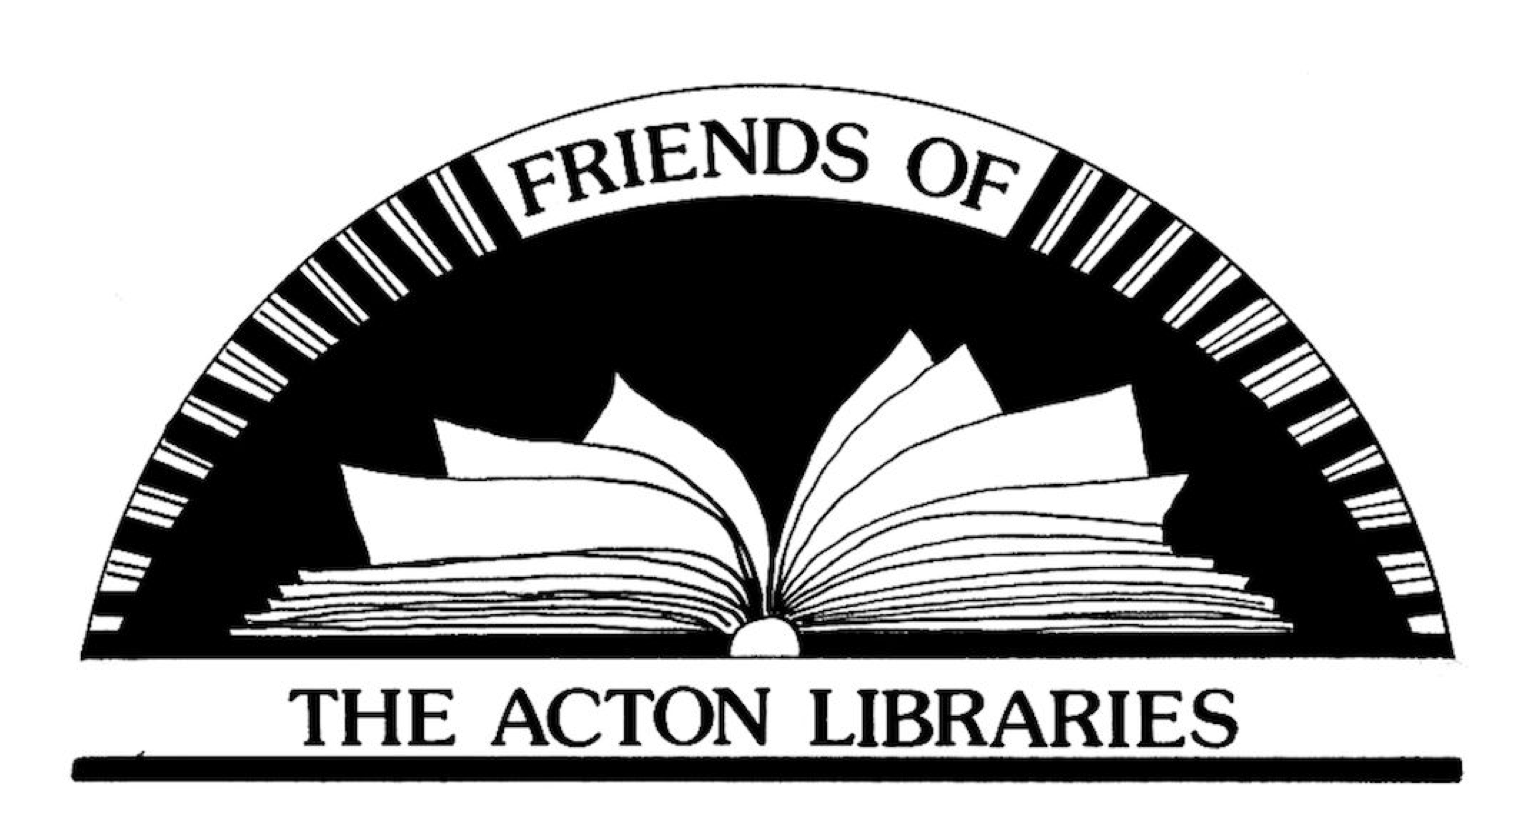 Friends of the Acton Libraries logo